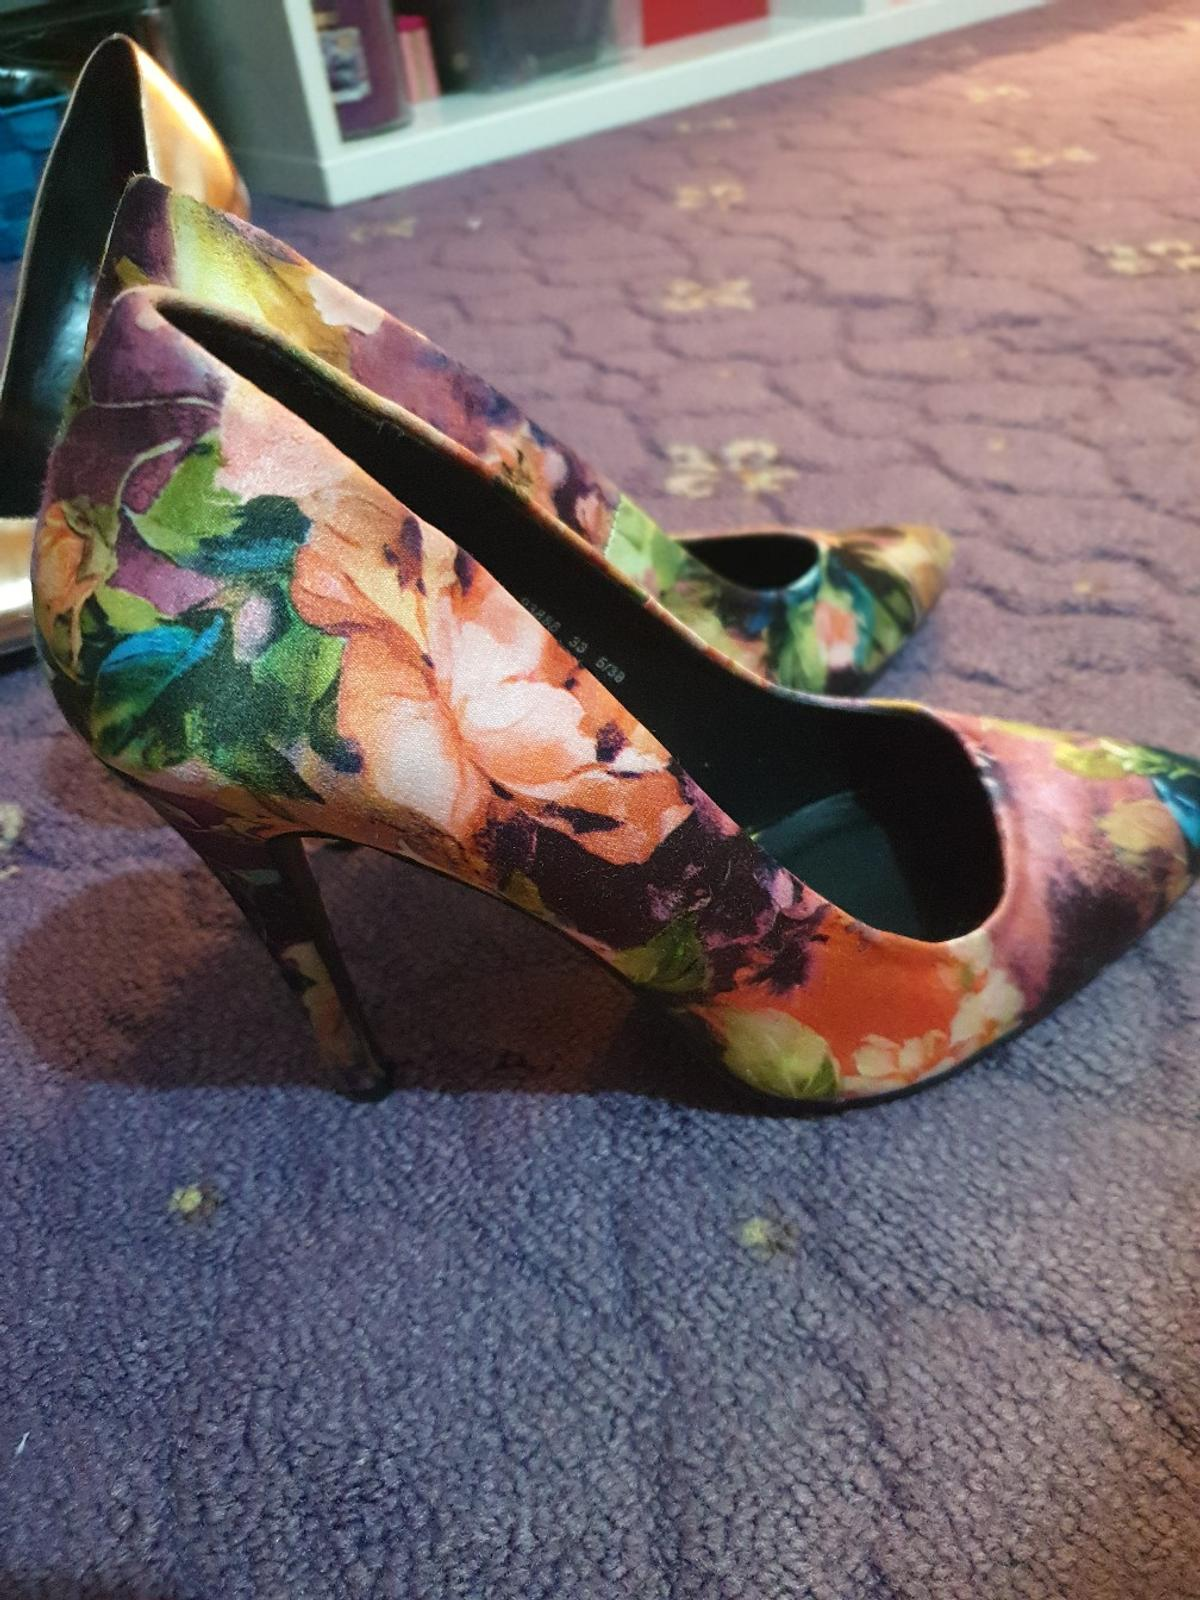 Colourful And Floral Heels Size 5 From Primark. Have Been Worn A Couple Of Times Condition Is Still Good, Please Take A Look At Pictures, Heel Is In Great Condition.